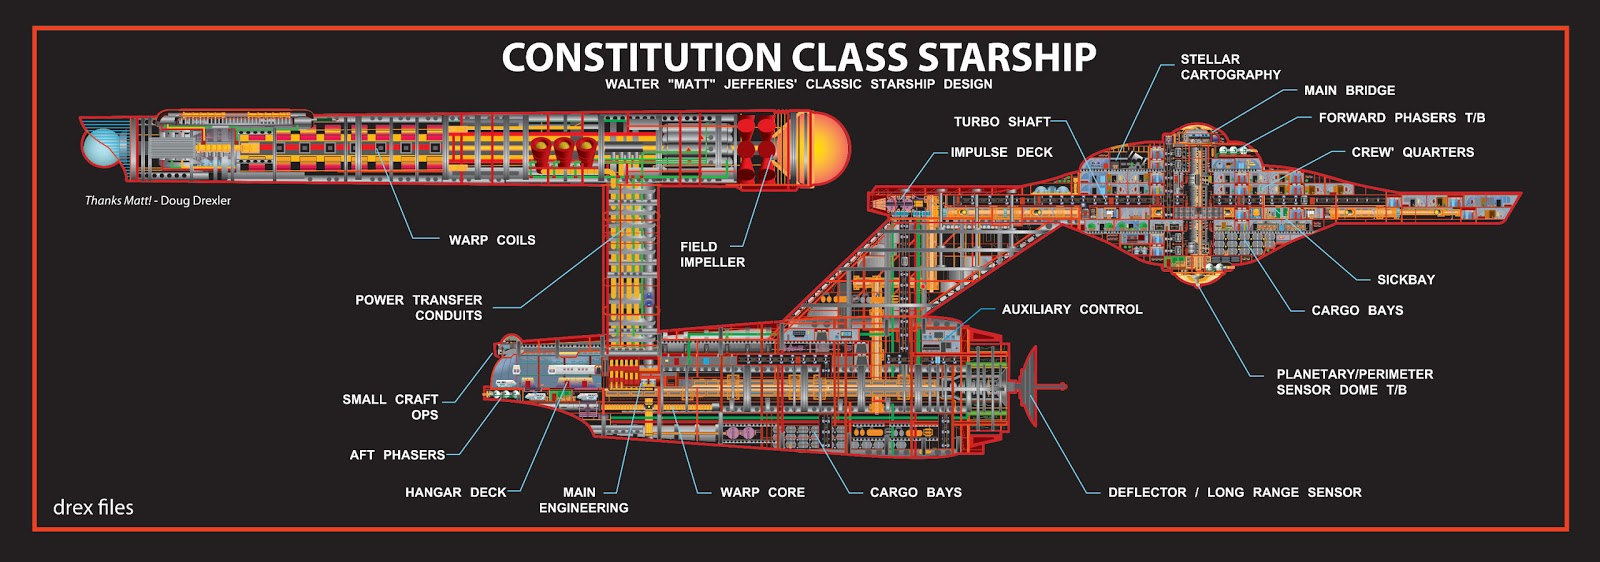 Uss Constitution Diagram 2007 Cobalt Wiring The Trek Collective: Slicing Up Enterprise - Cutaway Models And Diagrams